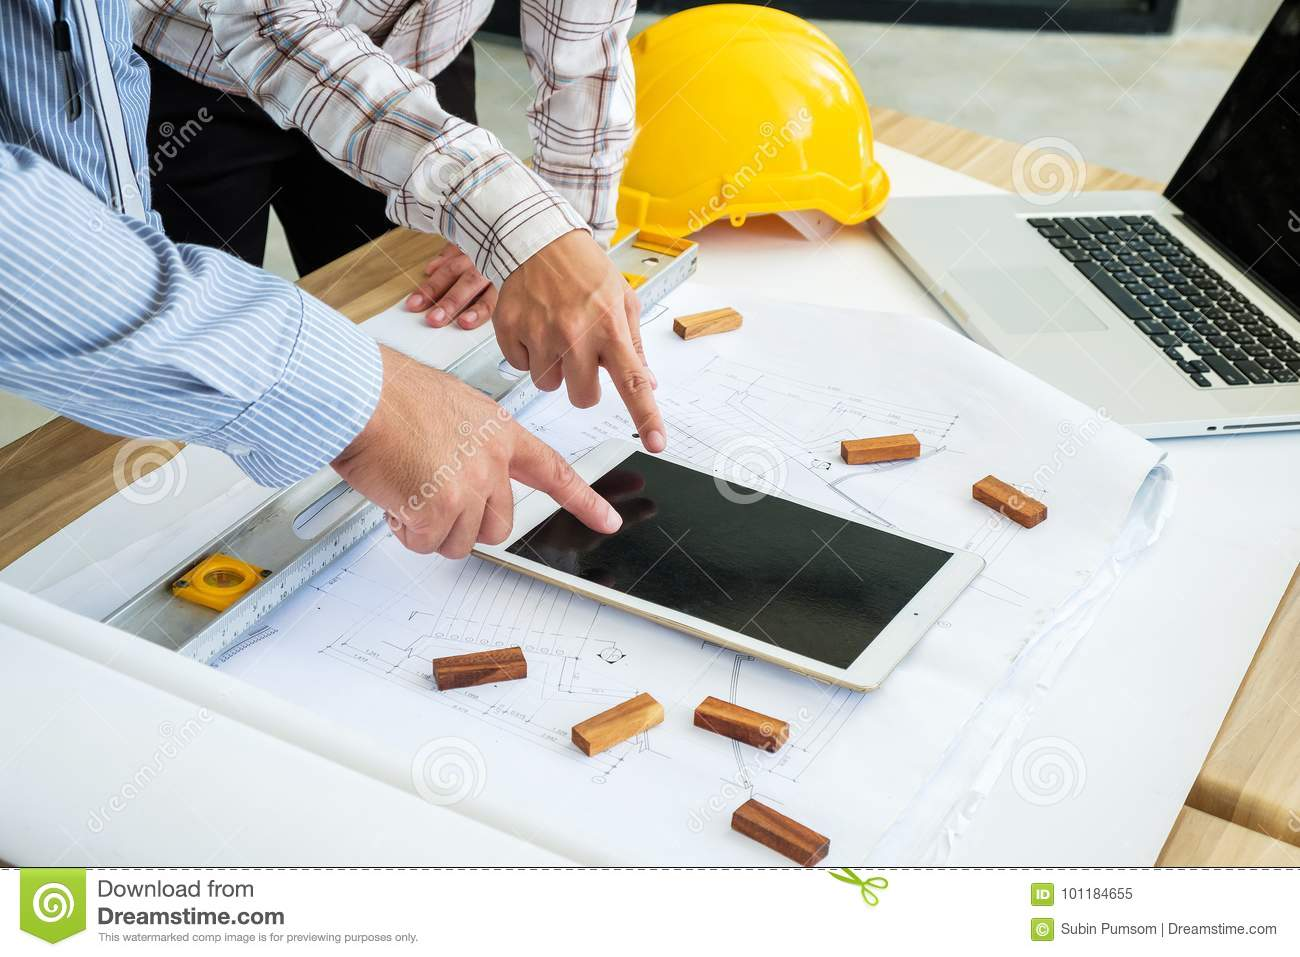 Engineering is looking tablet on a blueprint. To prepare for fie